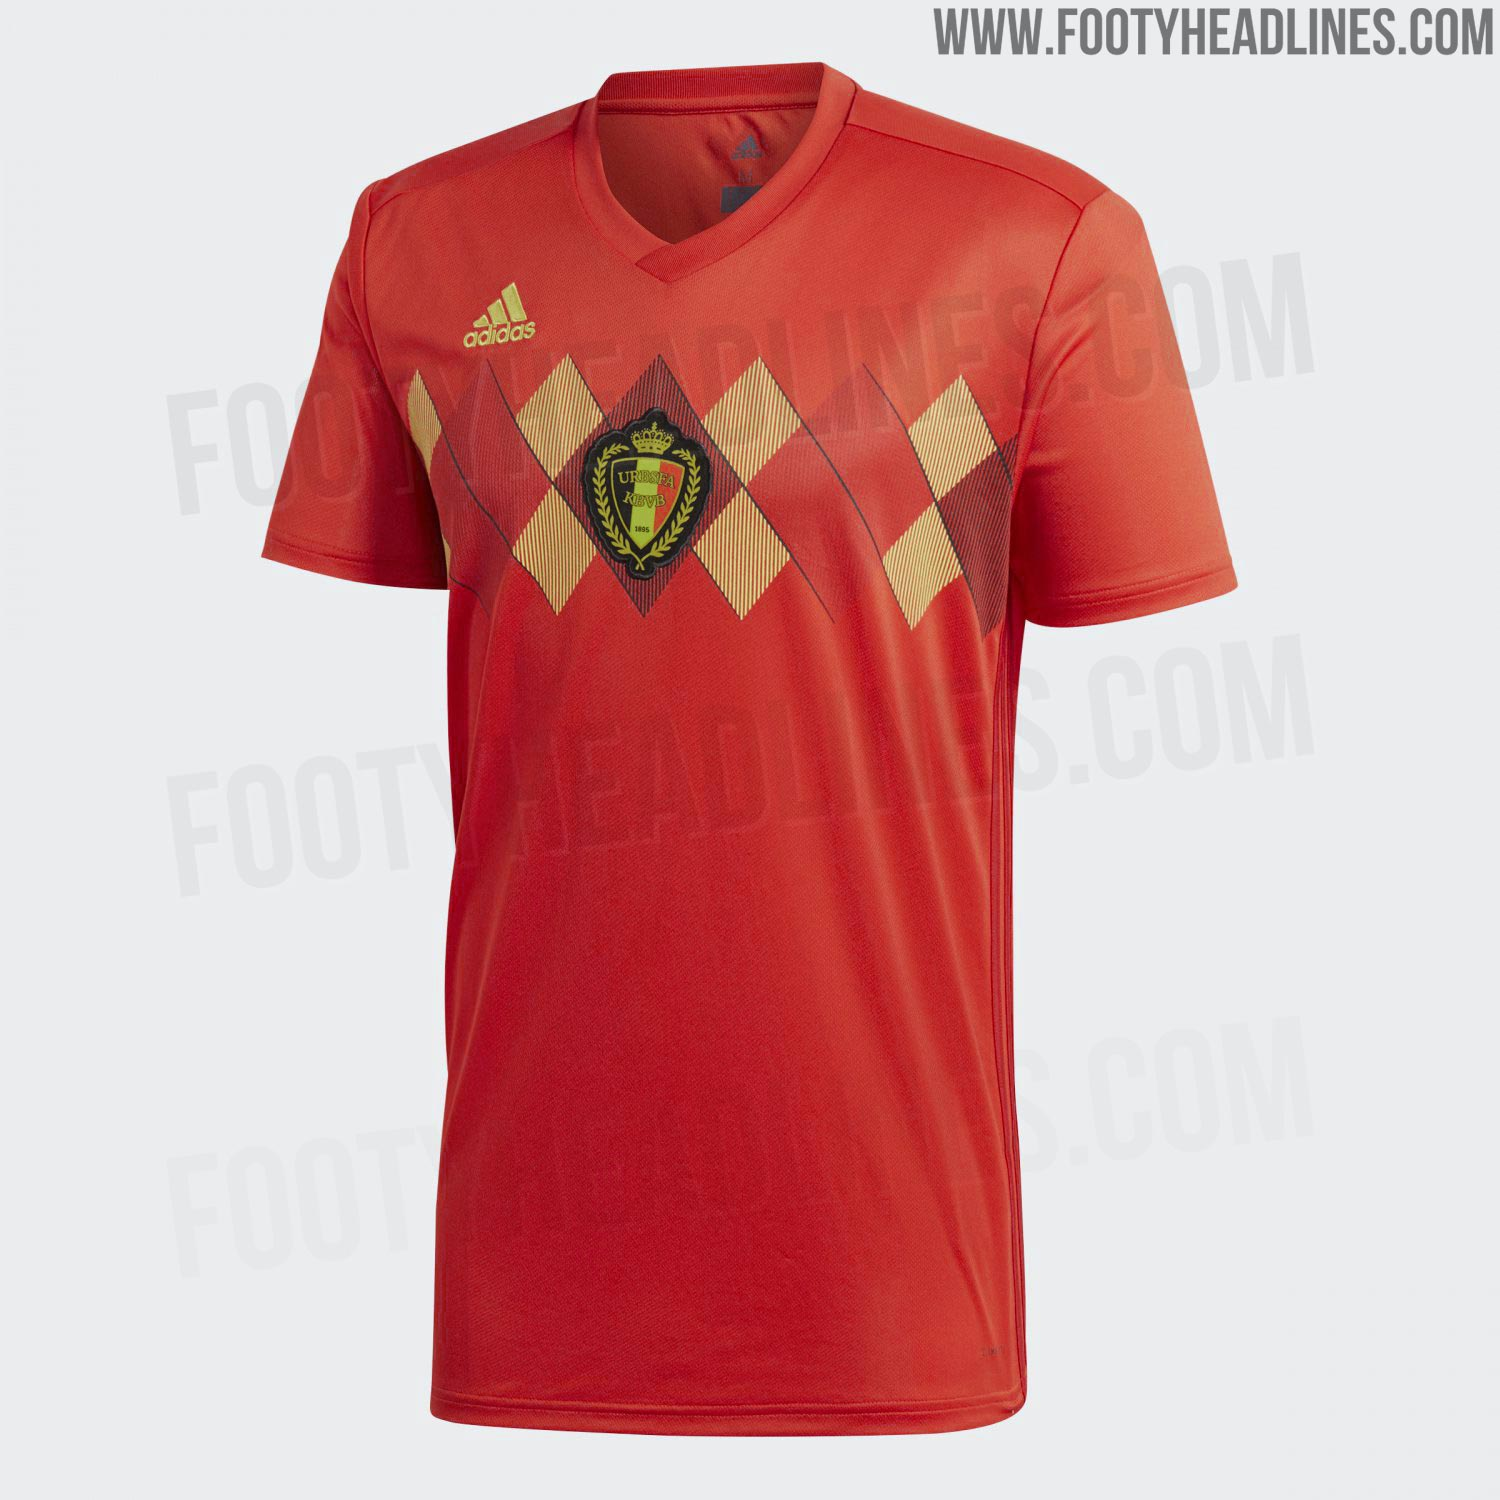 Belgium 2018 World Cup Home Kit Released - Footy Headlines